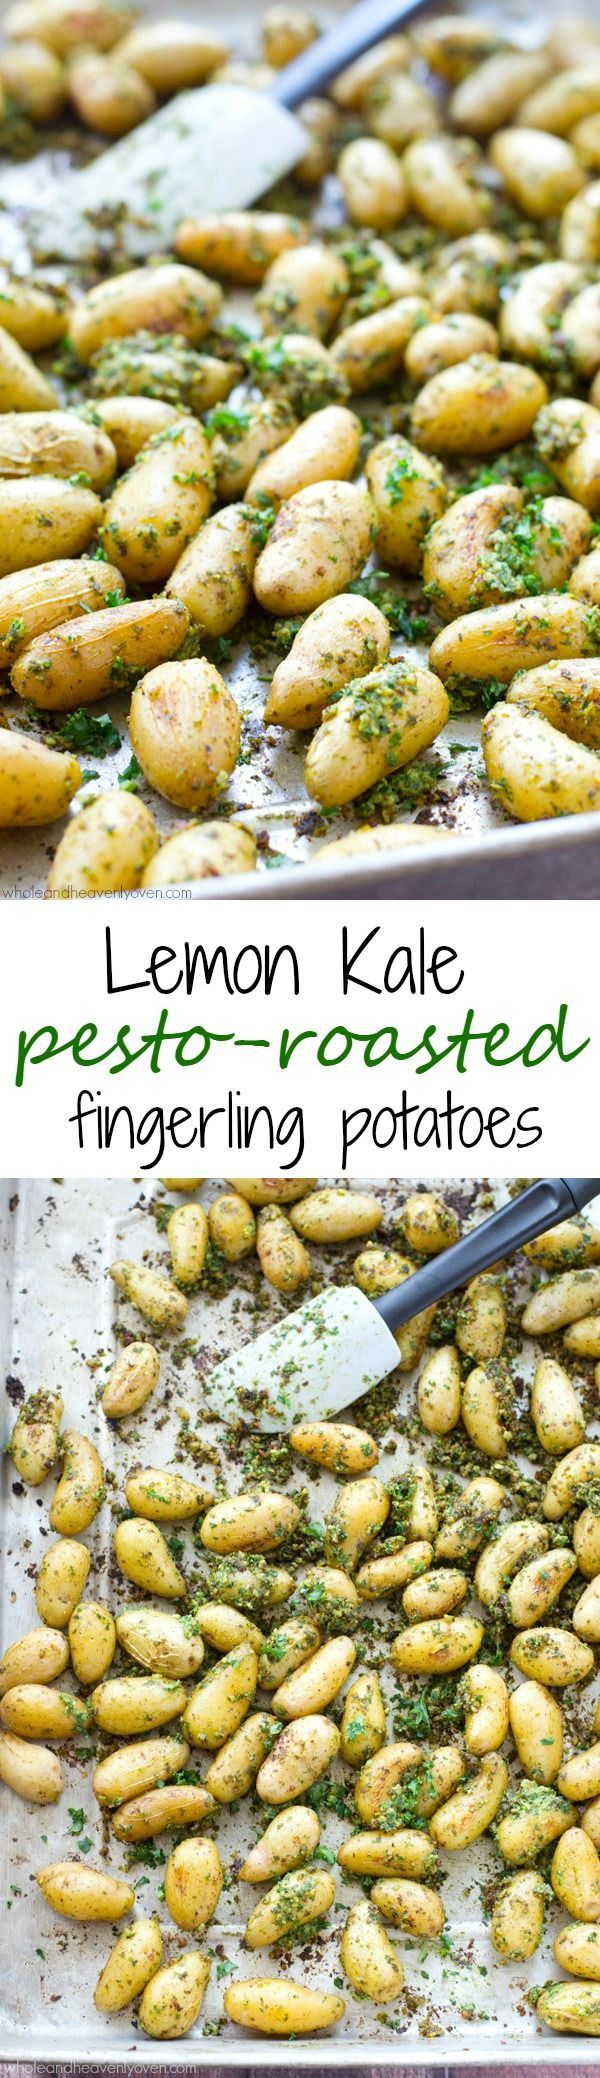 won't believe how much flavor is packed into these pesto-roasted fingerling potatoes! They make an easy and delicious side dish for any spring dinner. @WholeHeavenly